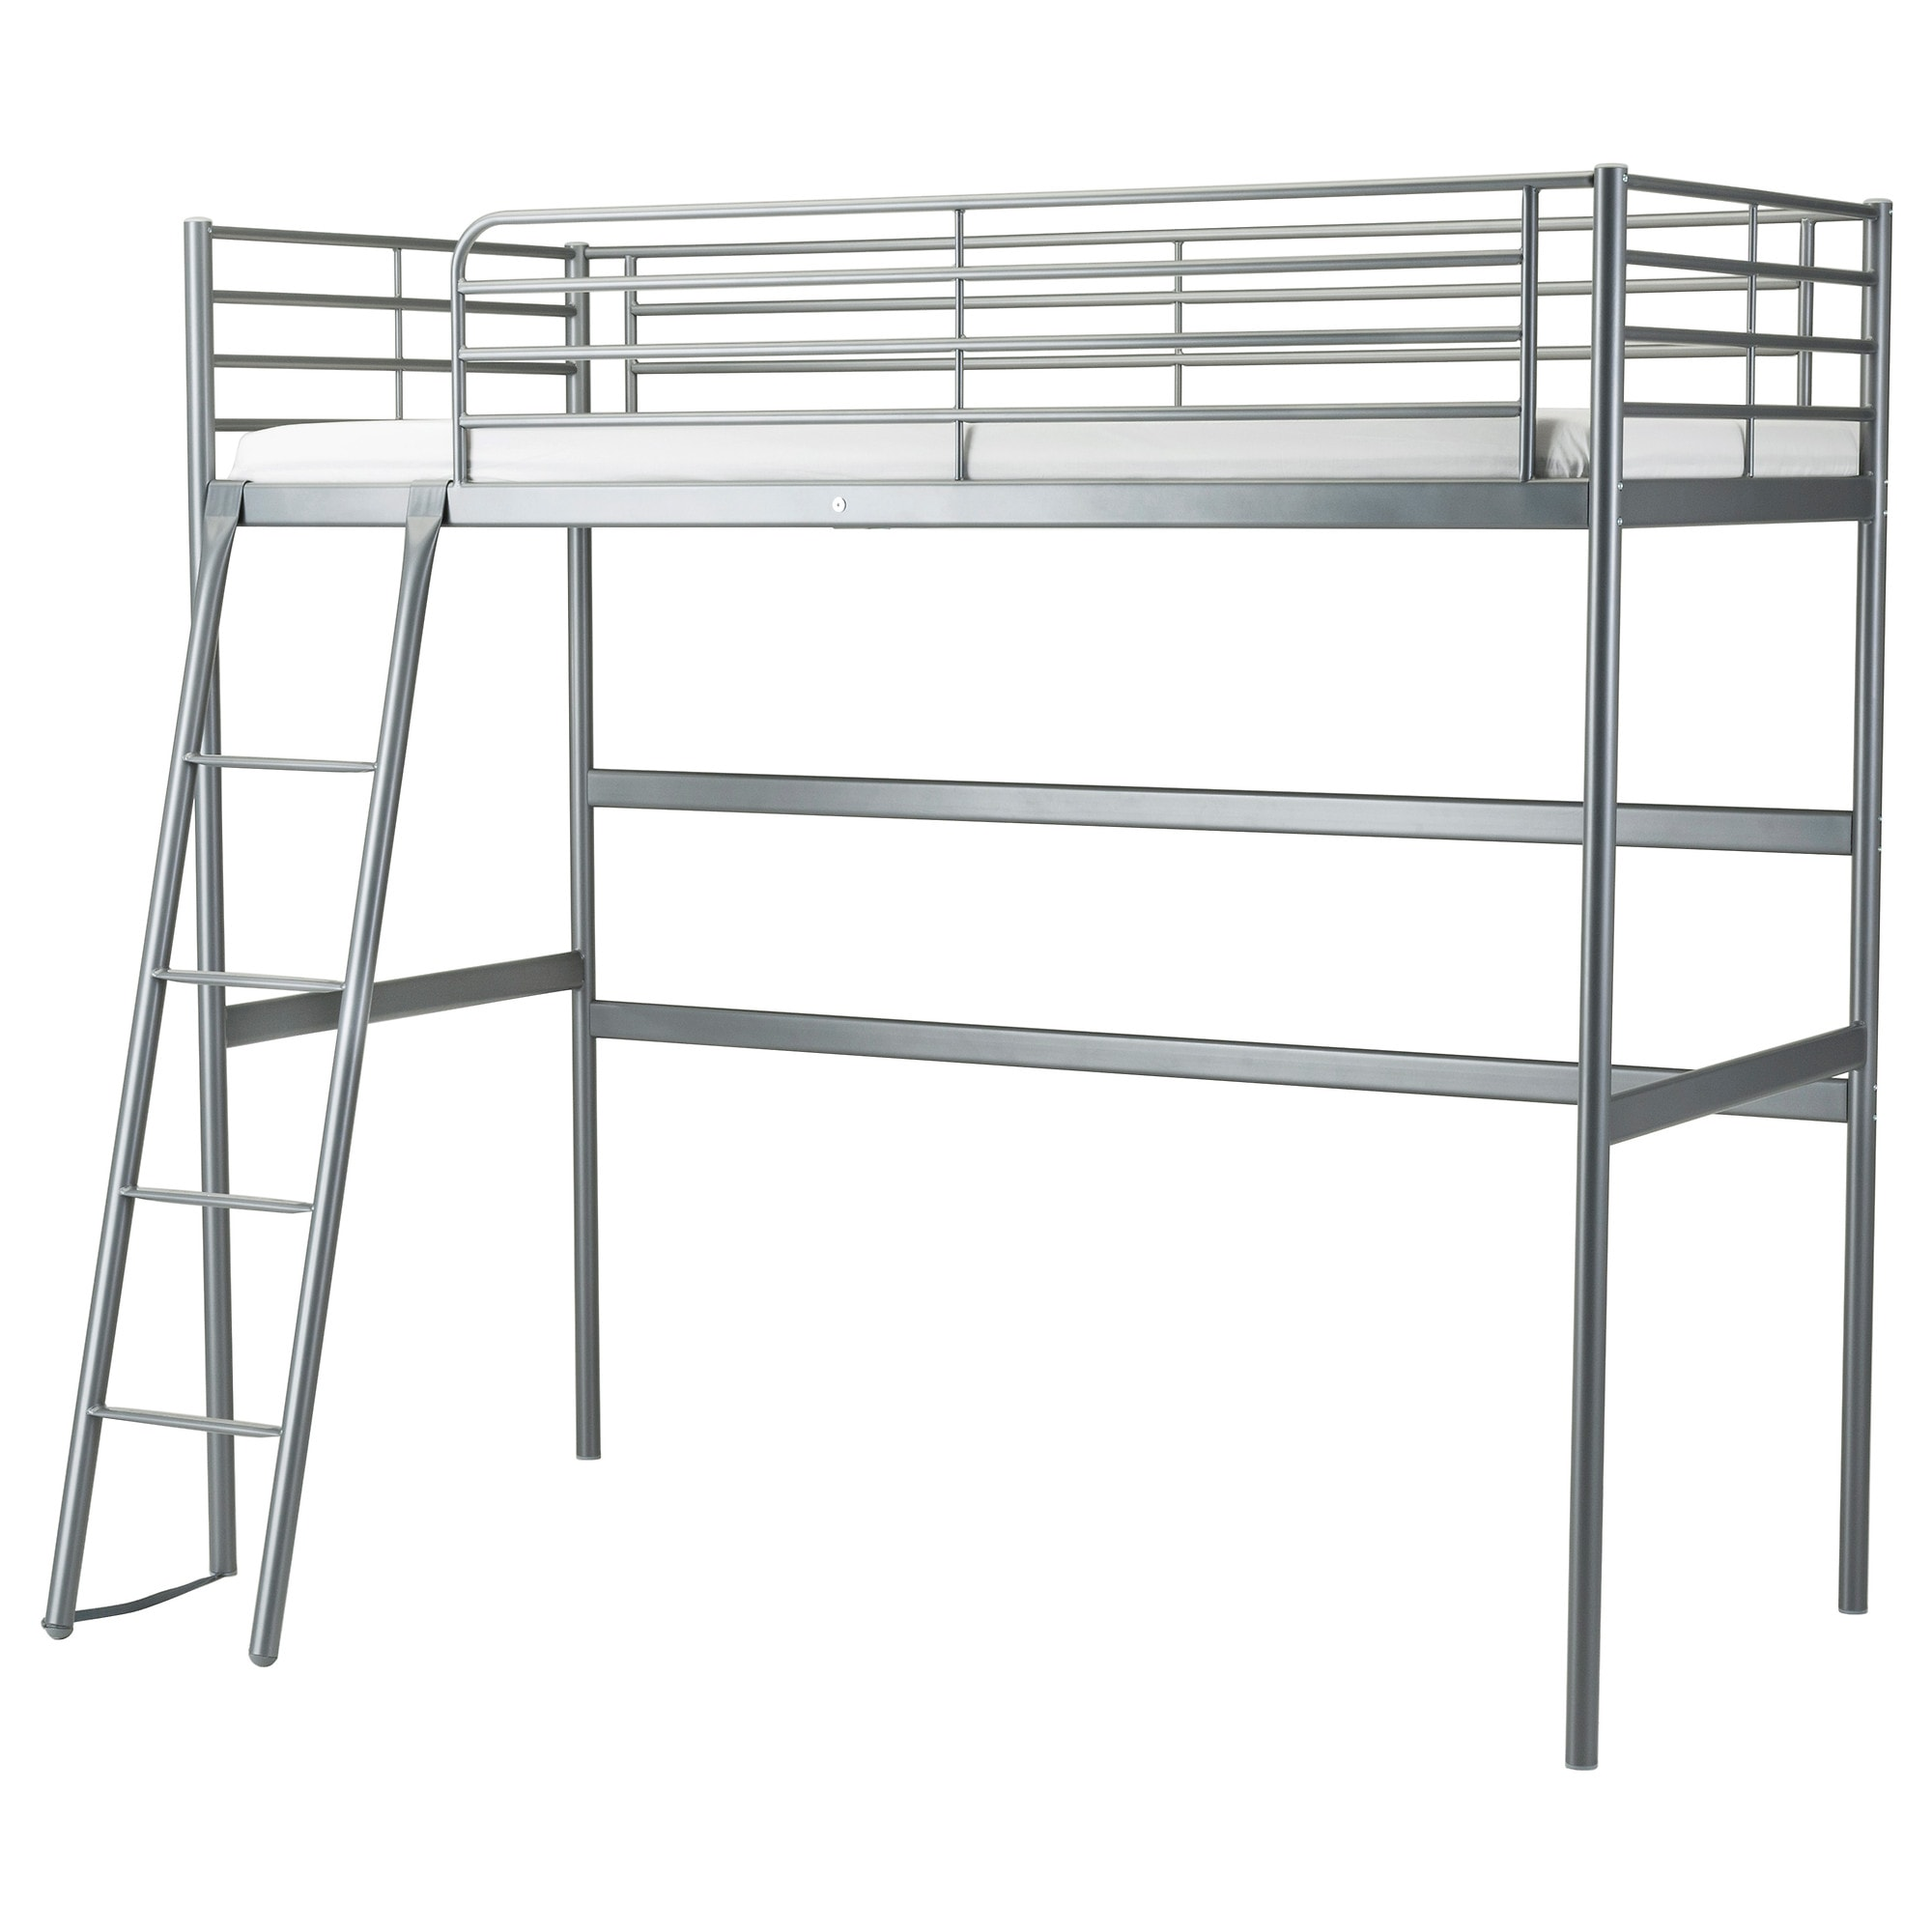 Bunk beds for kids ikea - Bunk Beds For Kids Ikea 20